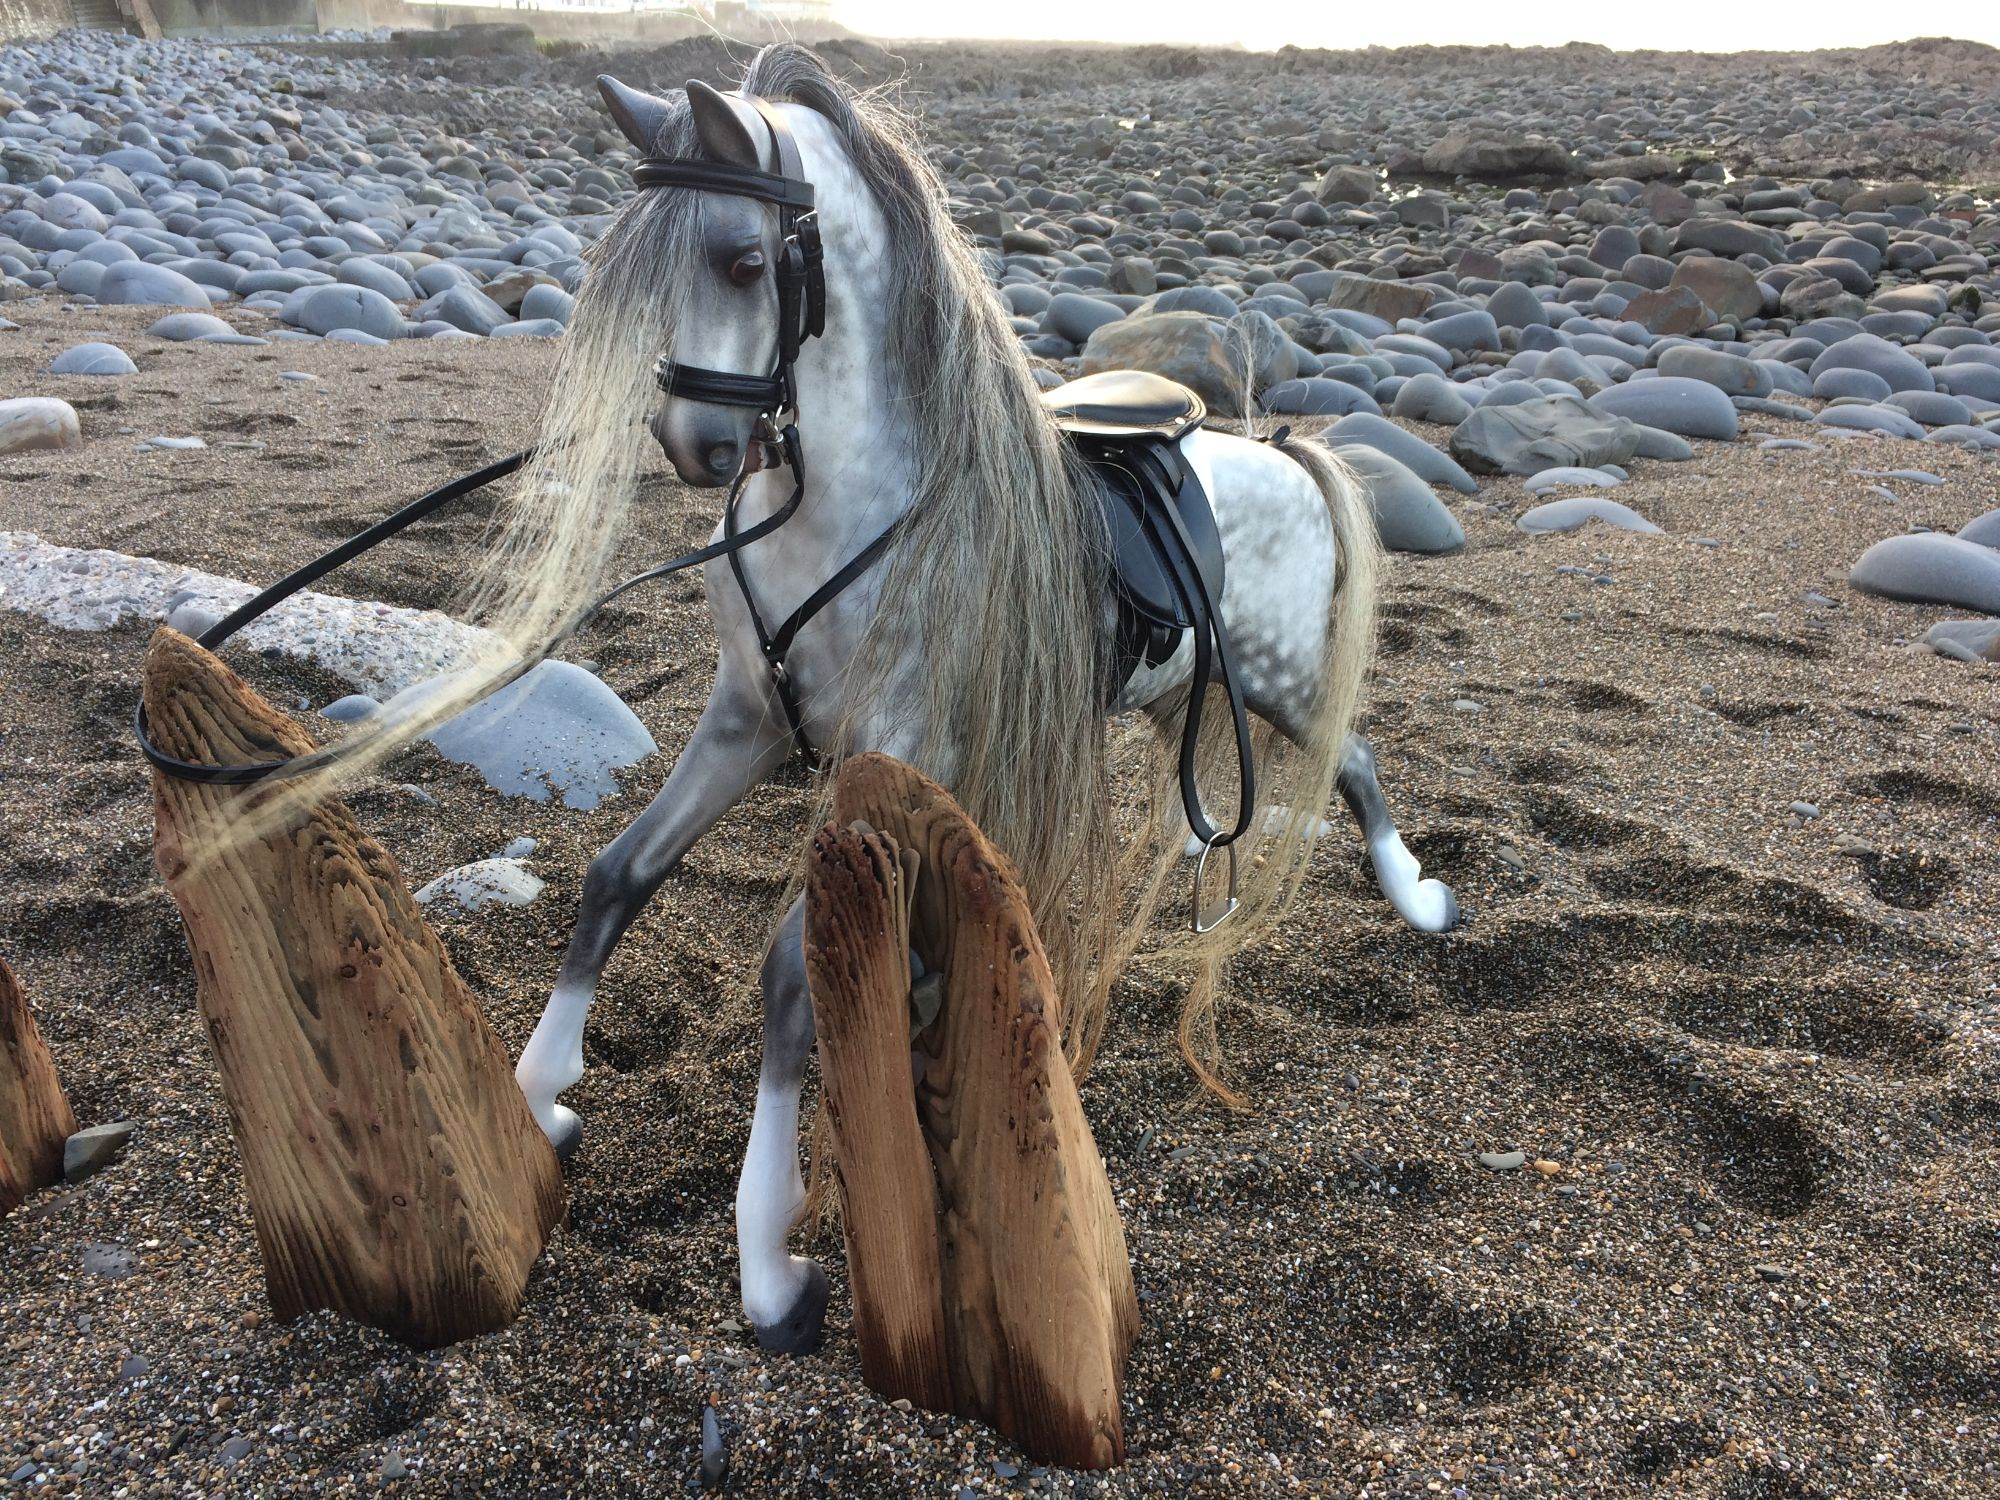 Haddon rocking horse  restored in a realistic style